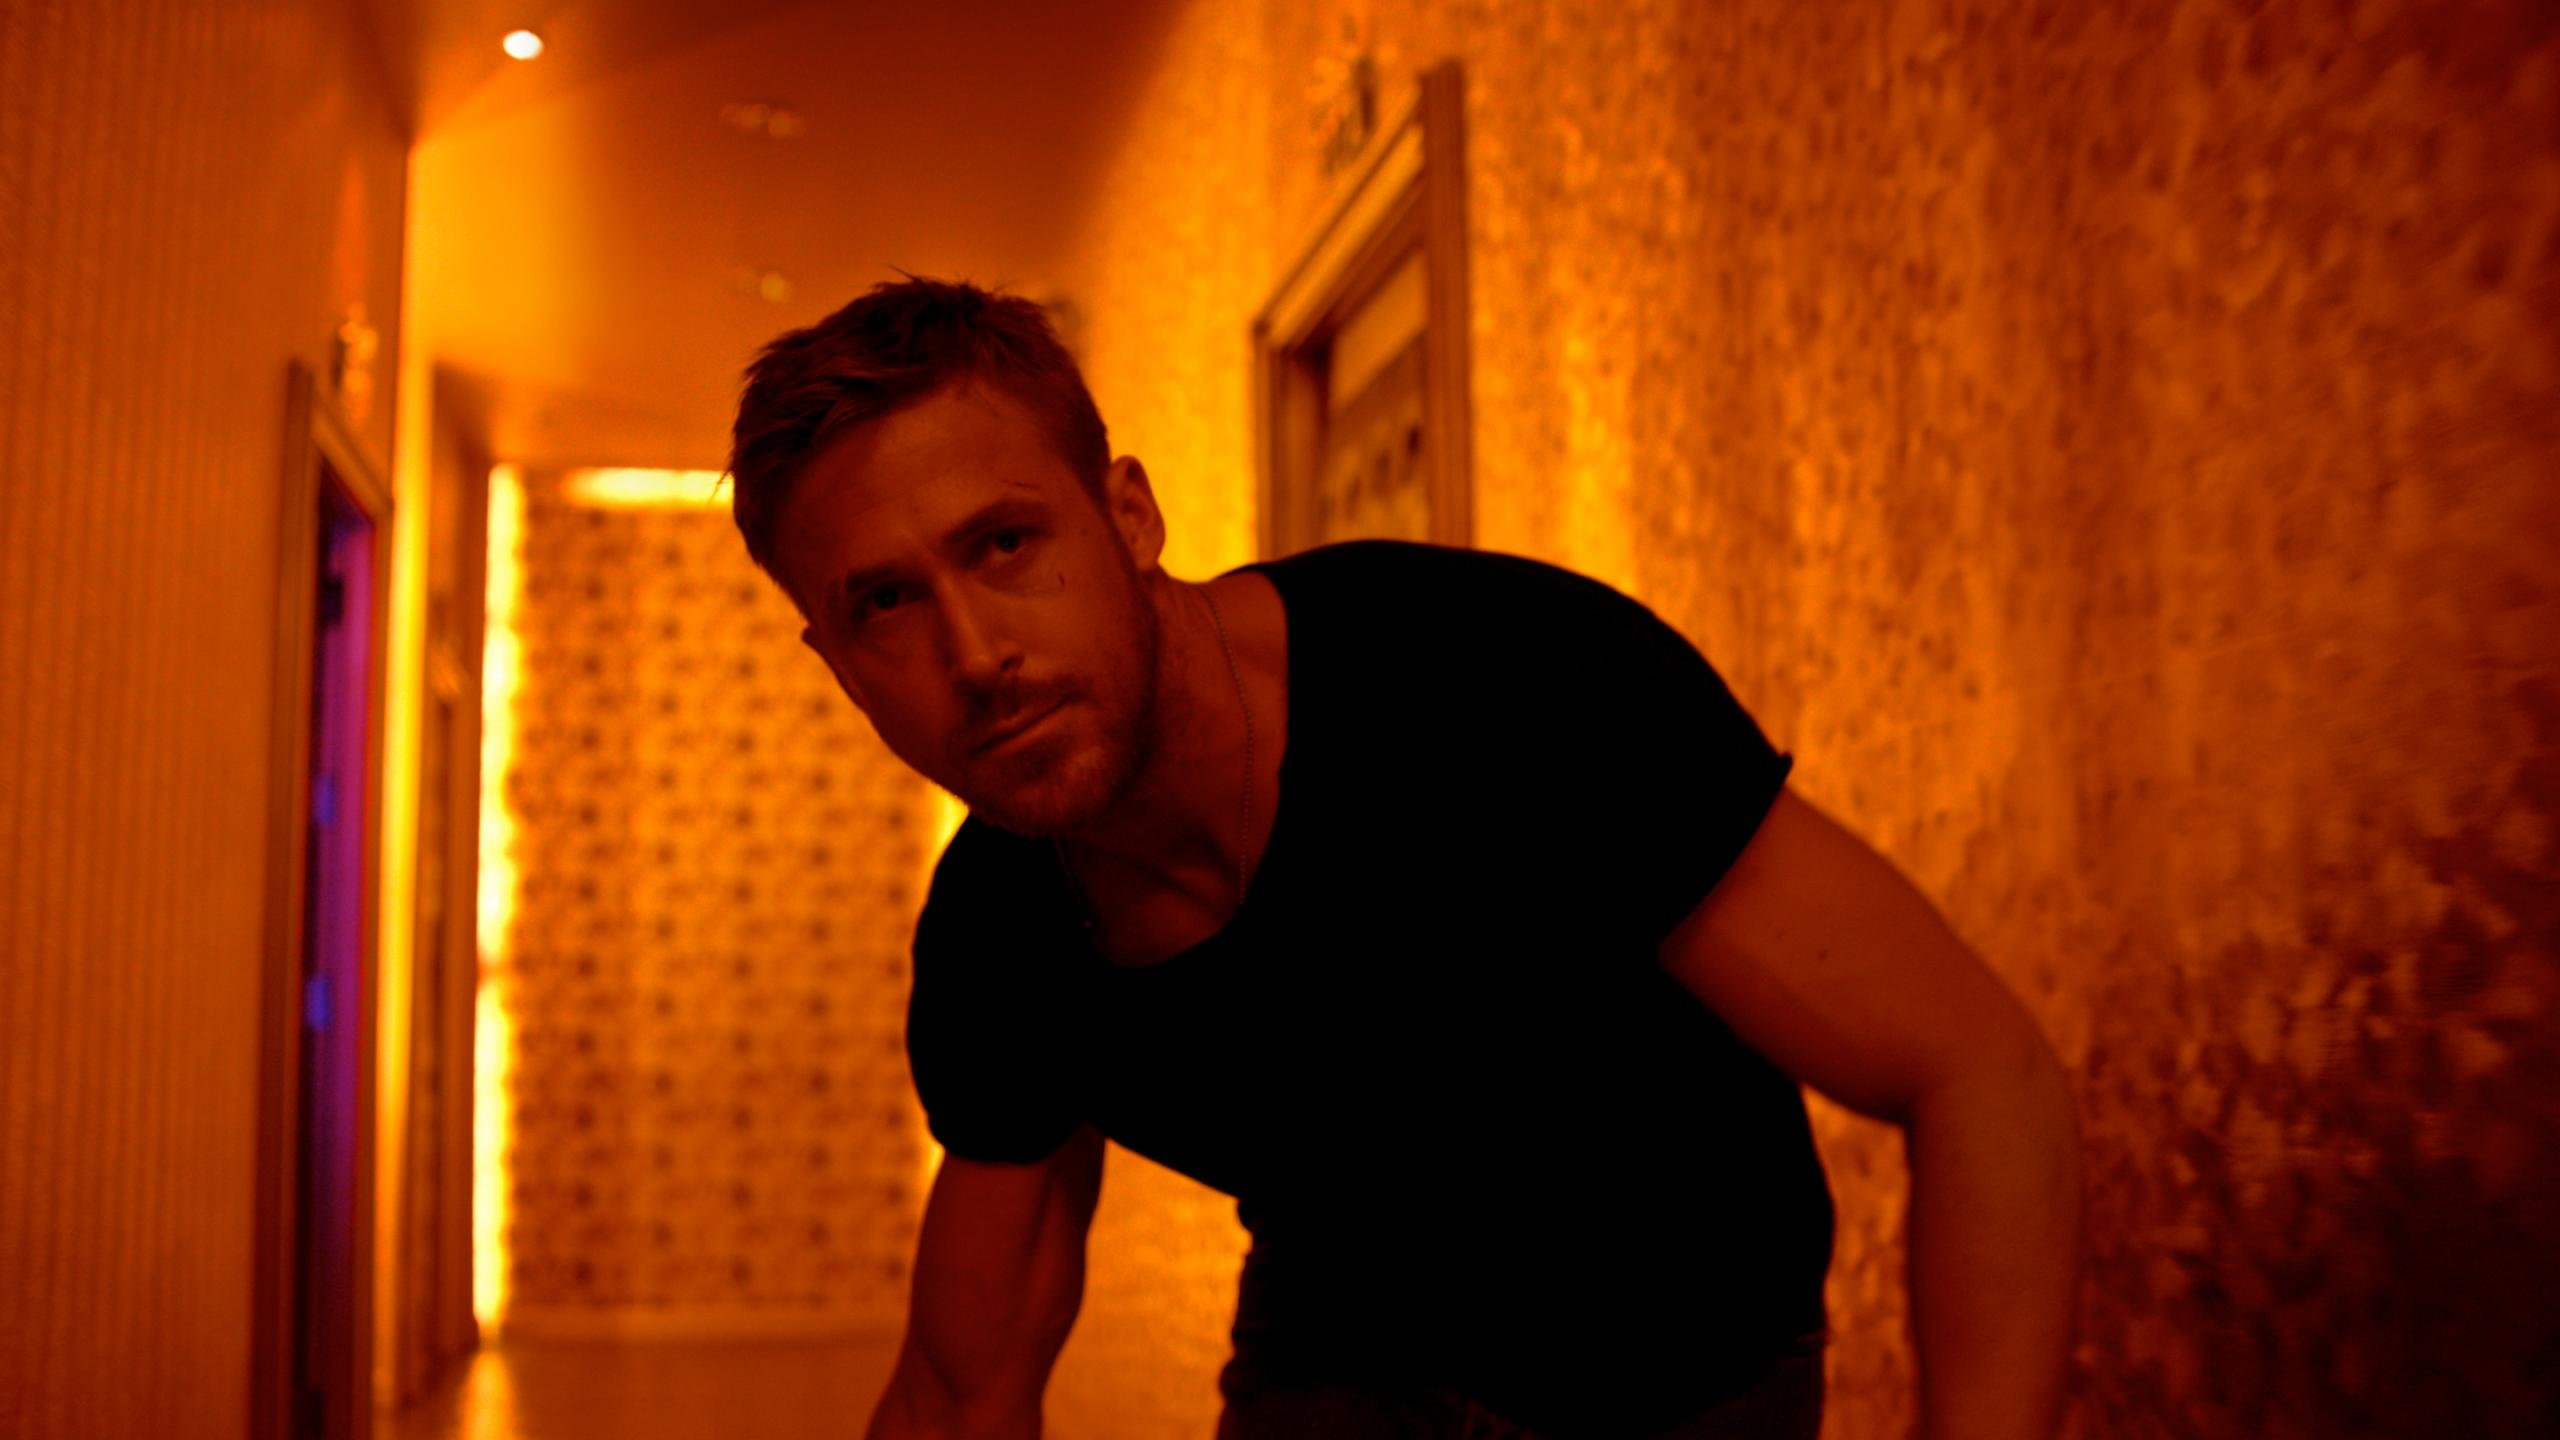 Awesome Ryan Gosling free wallpaper ID:192046 for hd 2560x1440 PC